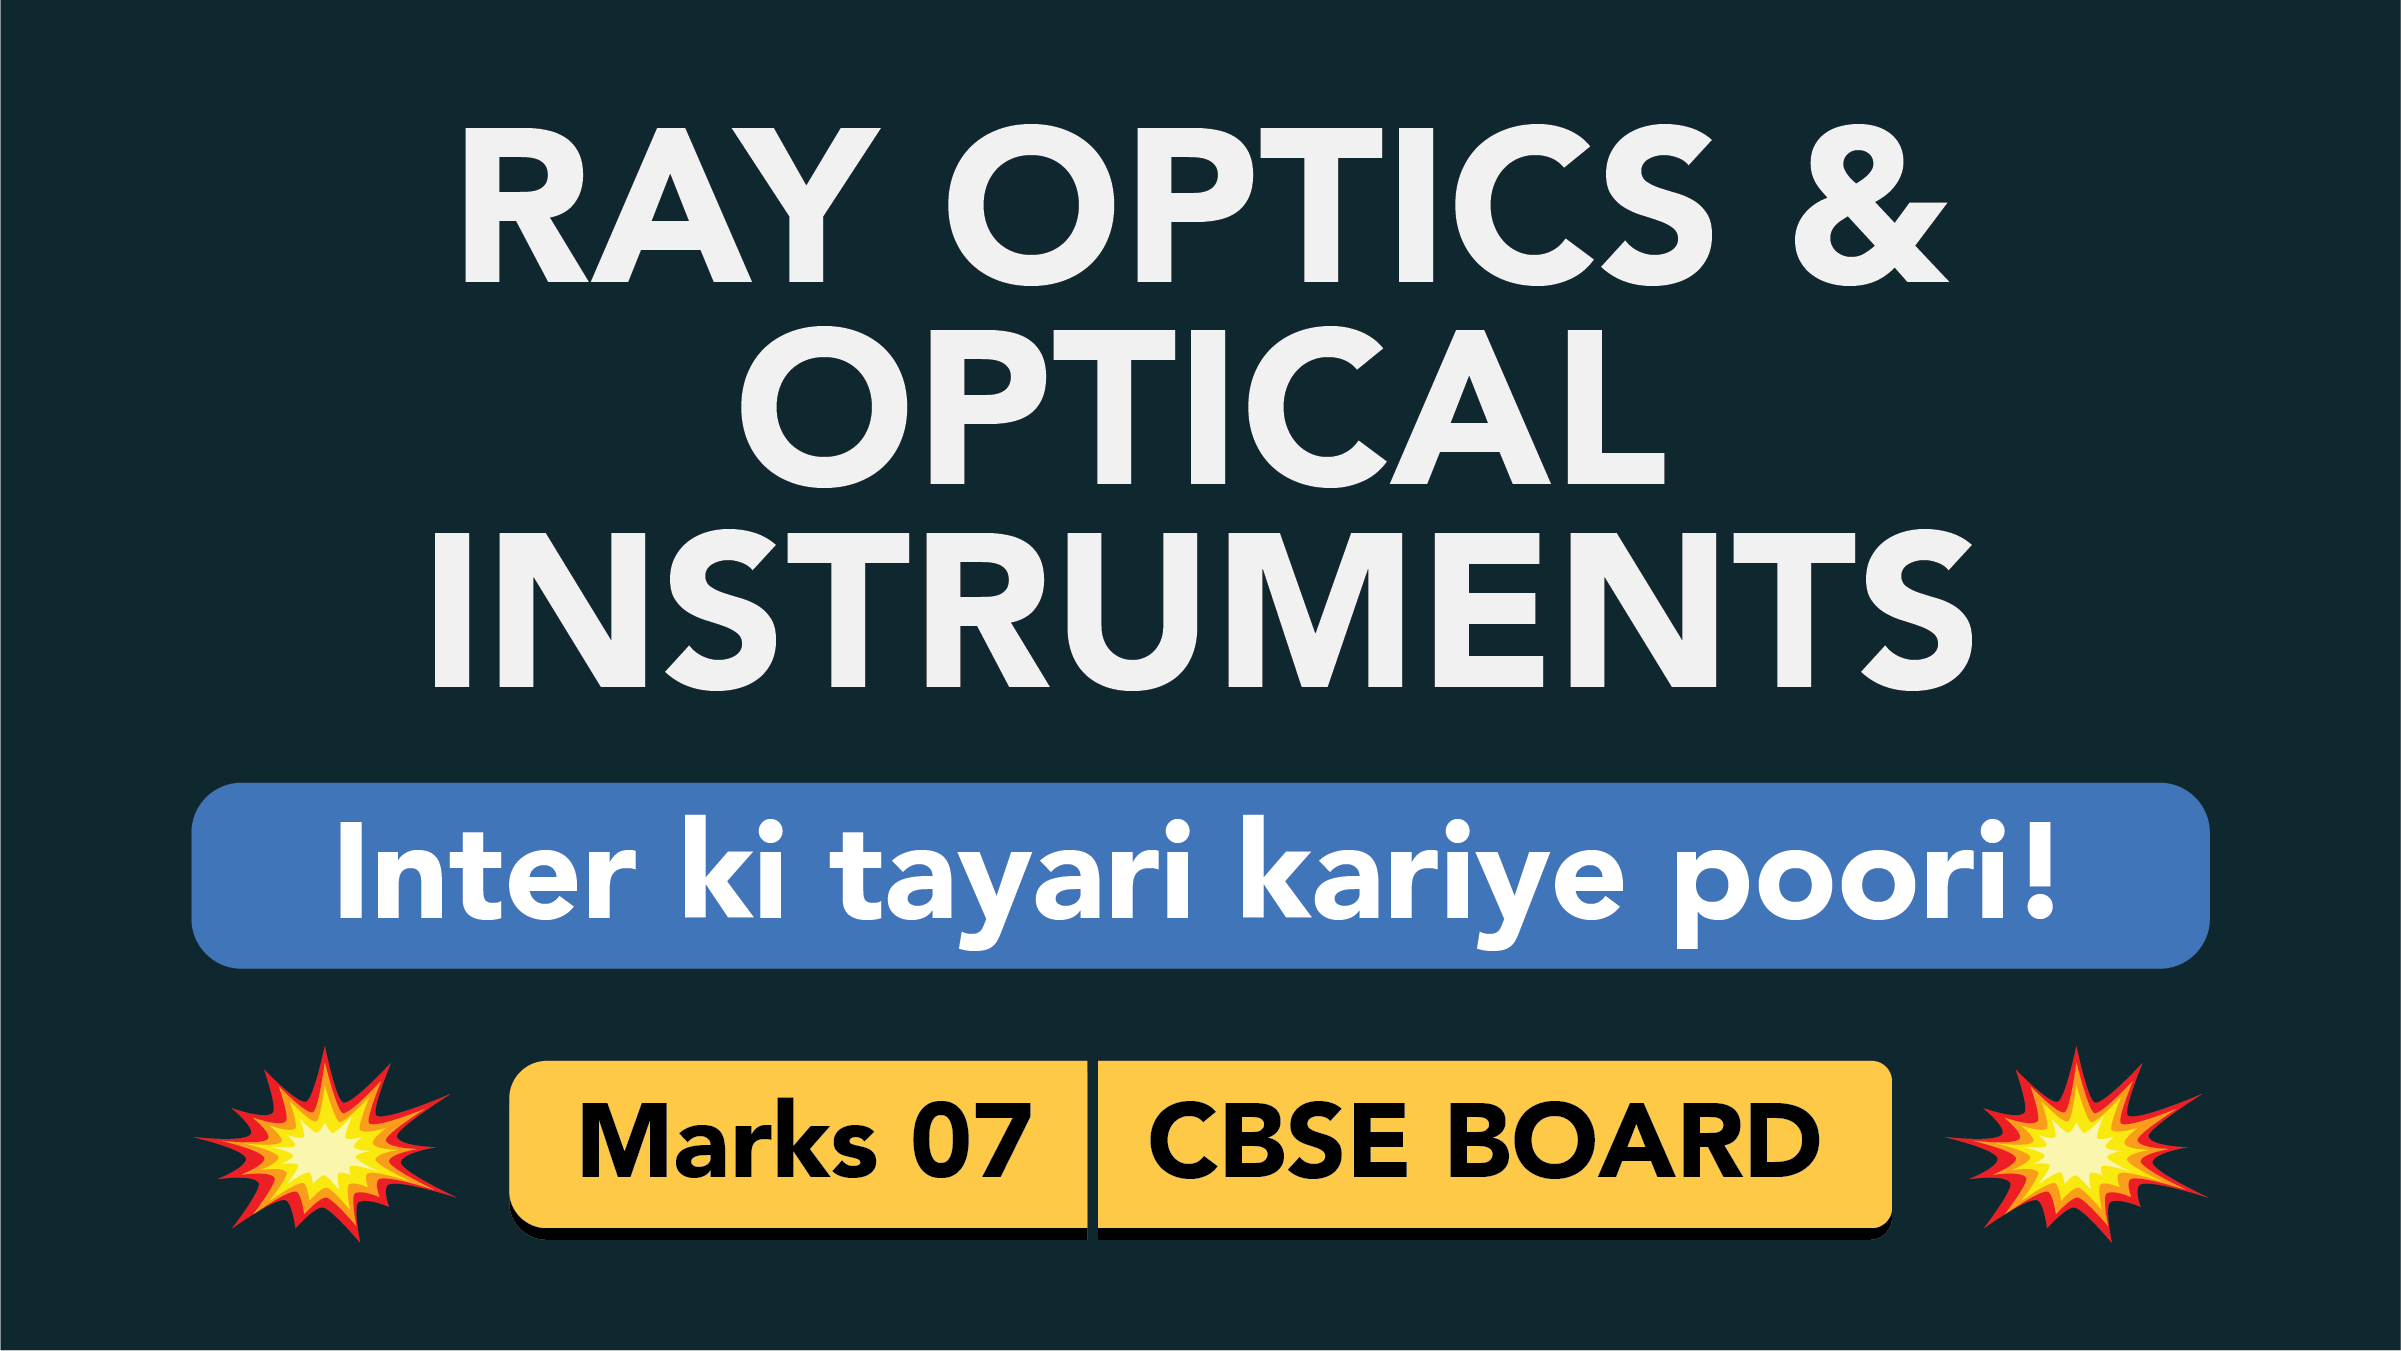 CBSE Board Class 12 RAY OPTICS AND OPTICAL INSTRUMENTS || Weightage and Important Topics